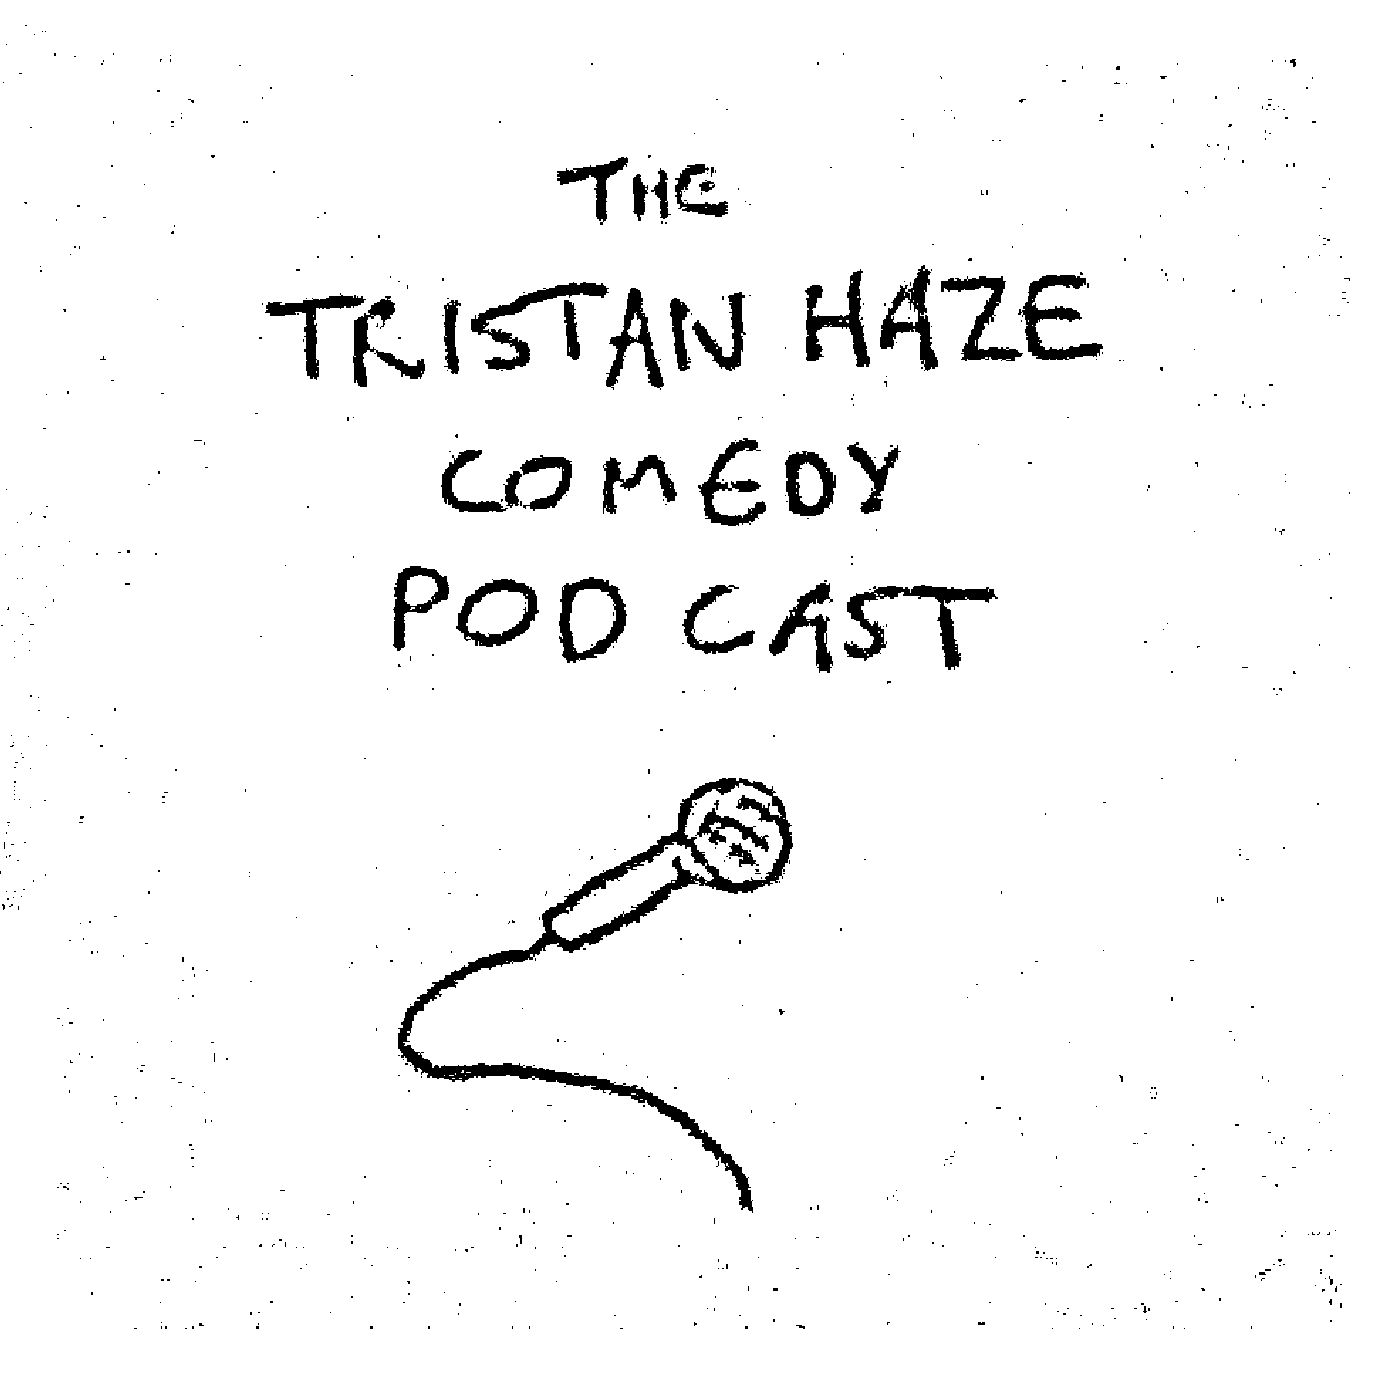 Tristan Haze Comedy Podcast